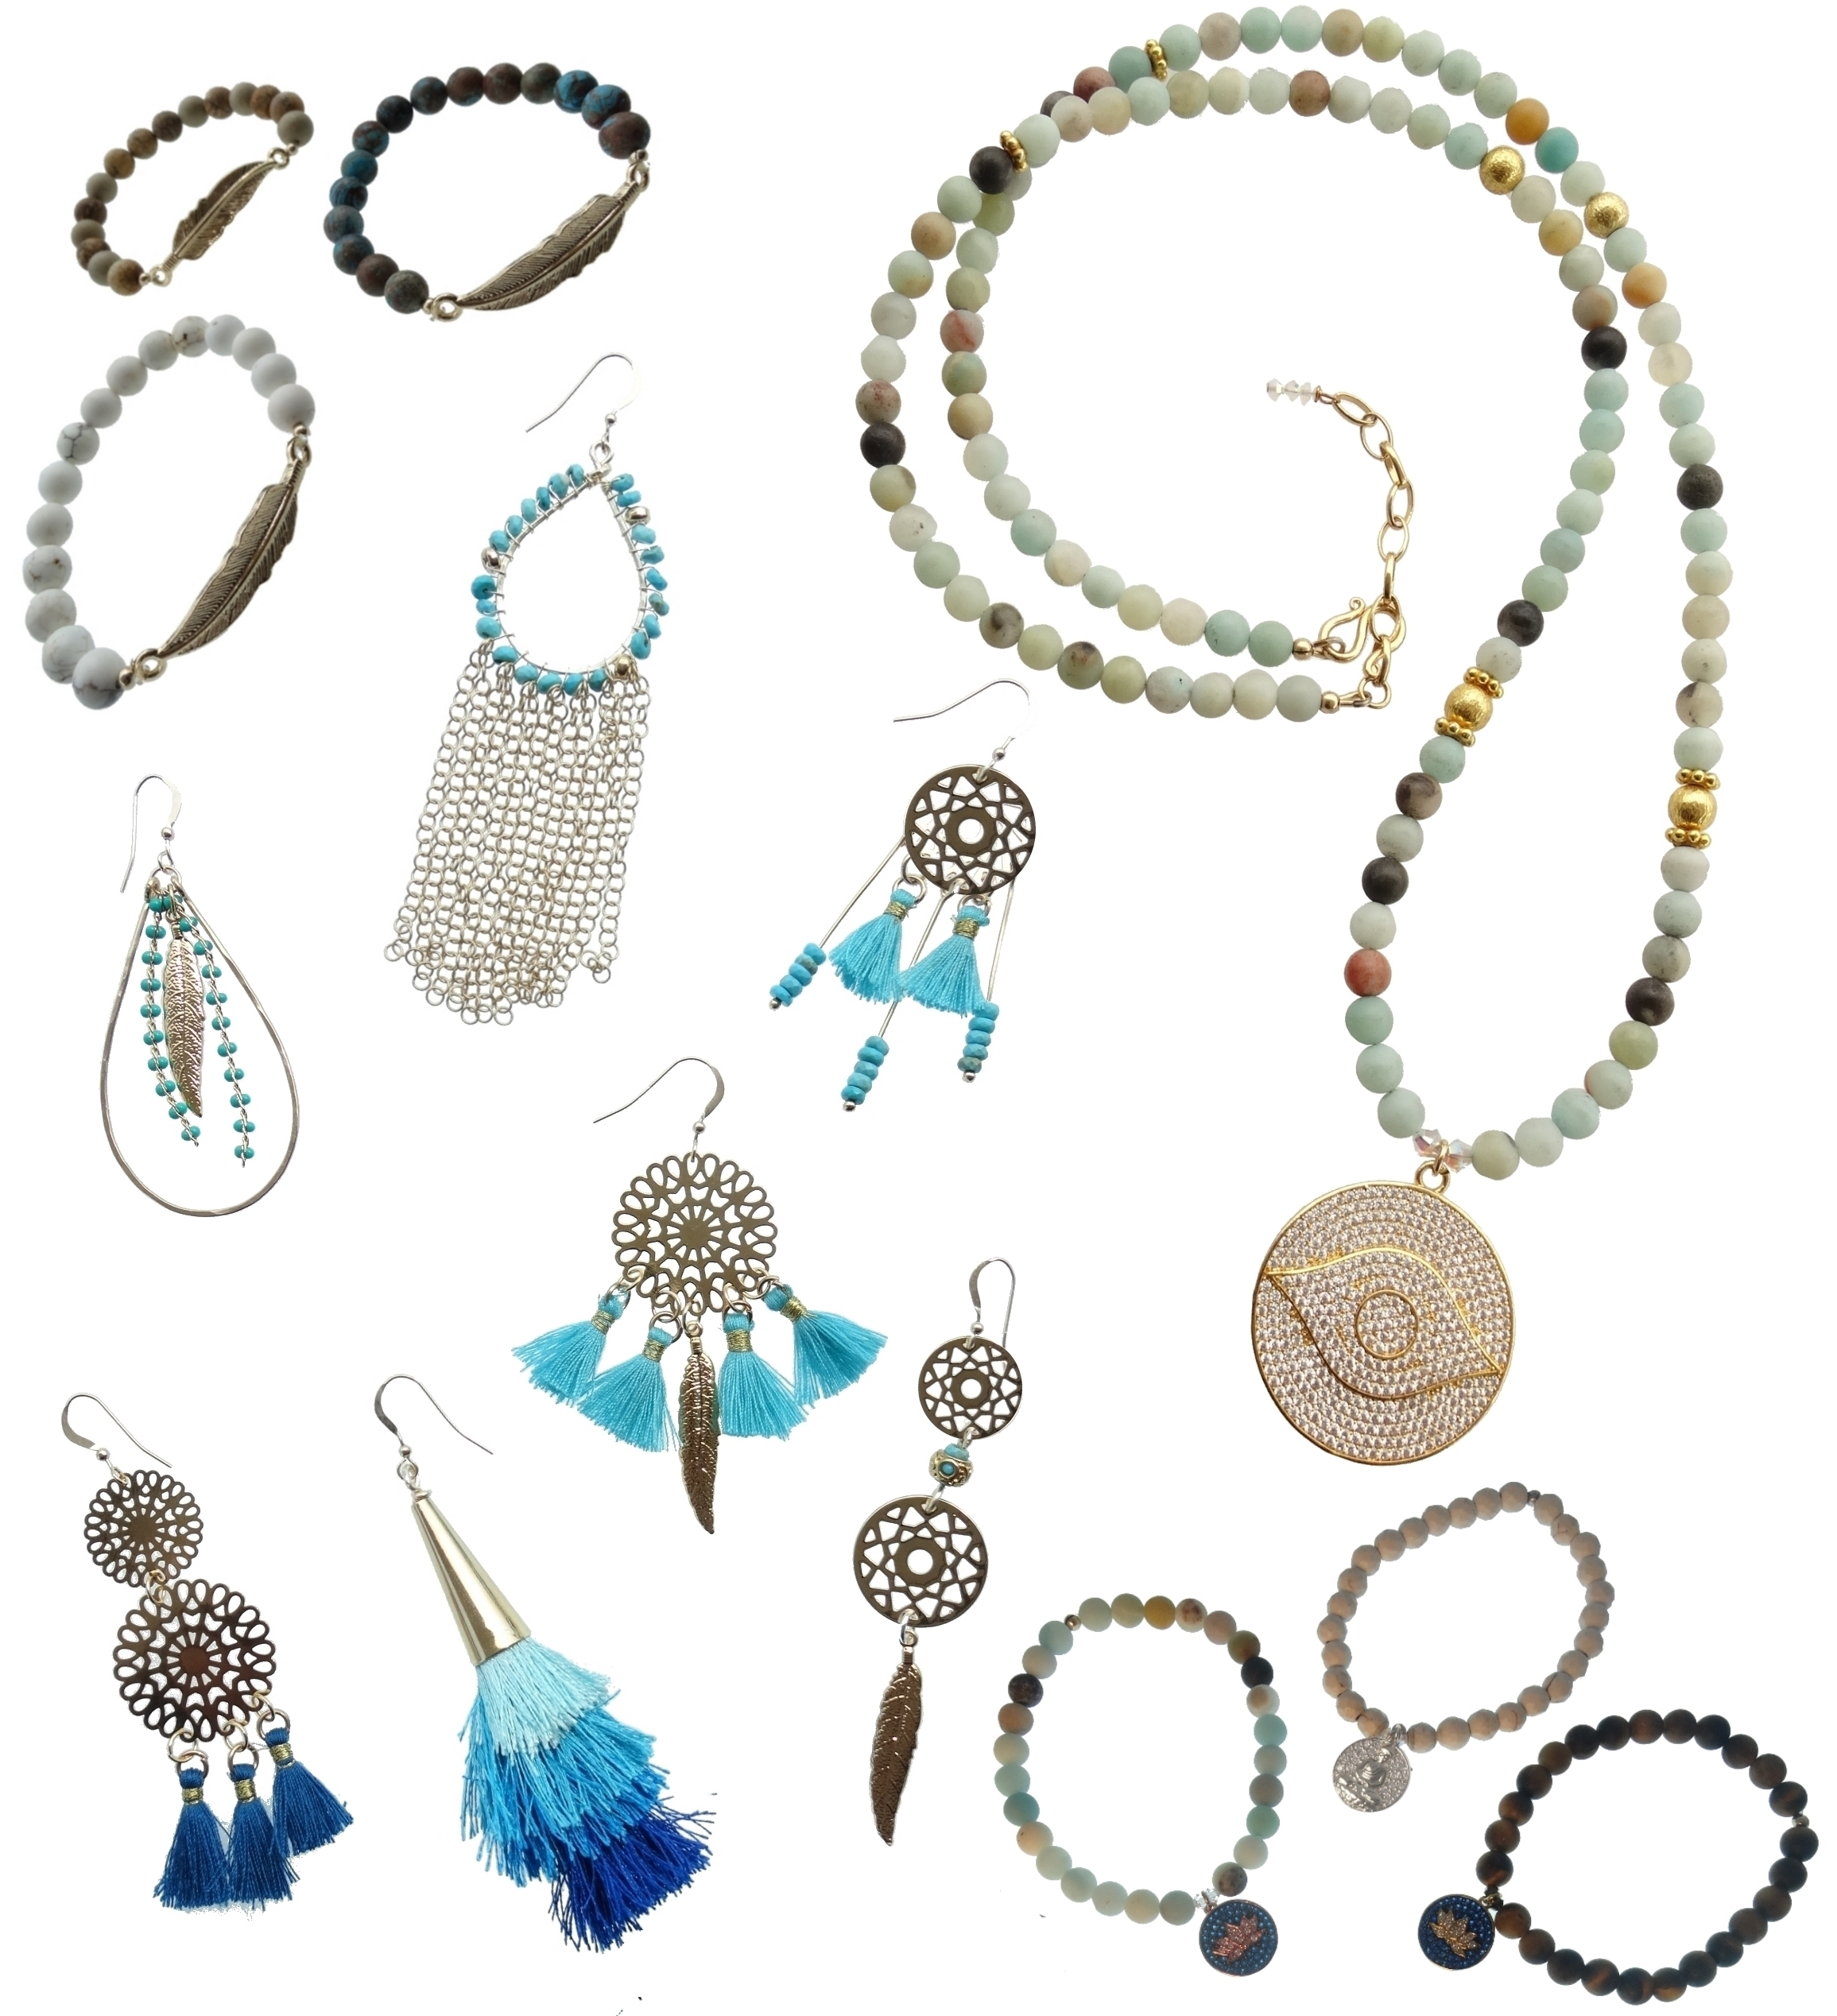 Boho Glam Collection - Necklace & Bracelets available in:Turquoise, White Turquoise, Amazonite, Brown Agate, Aqua Terra & Lava